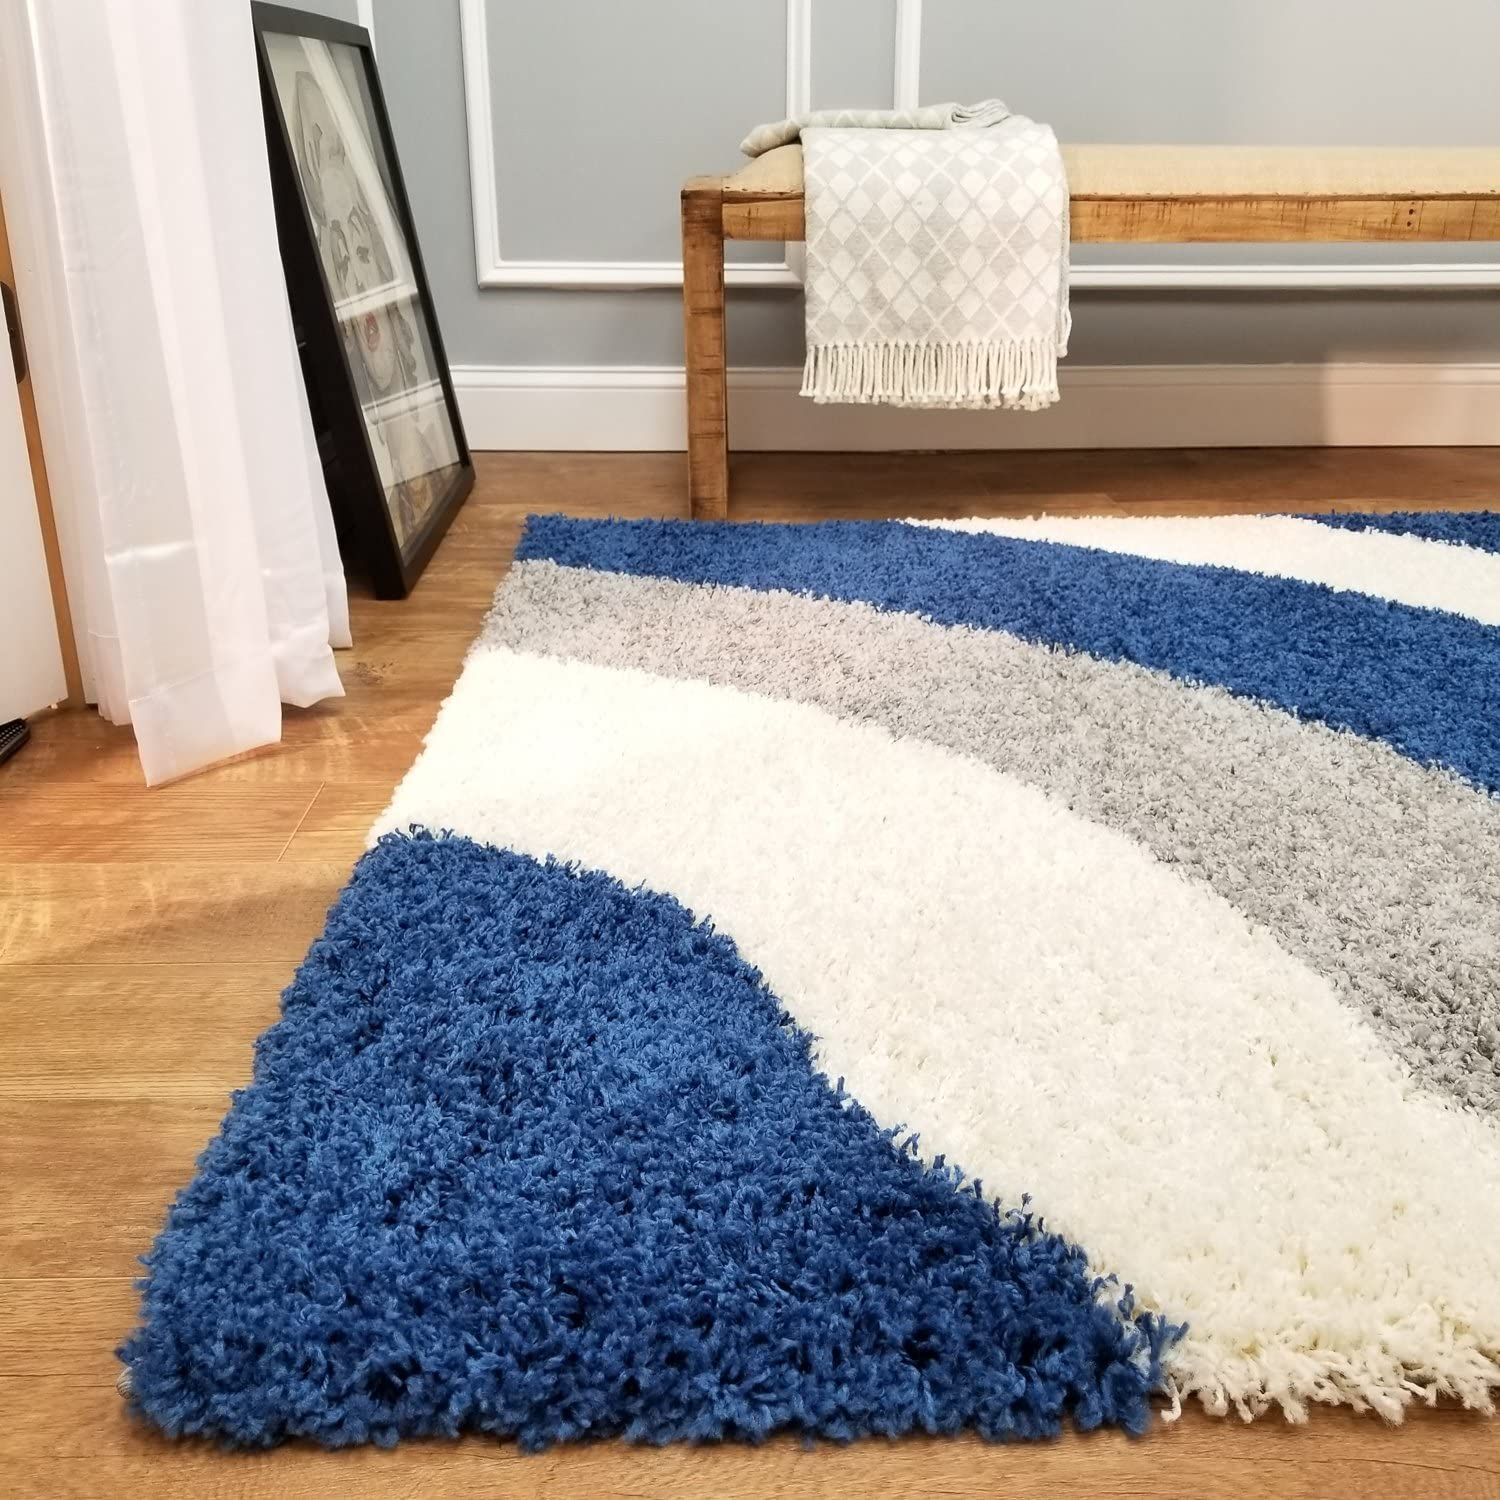 Soft Shag Area Rug 5x7 Geometric Striped Ivory Blue Grey Shaggy Rug Contemporary Area Rugs For Living Room Bedroom Kitchen Decorative Modern Shaggy Rugs Amazon Co Uk Kitchen Home